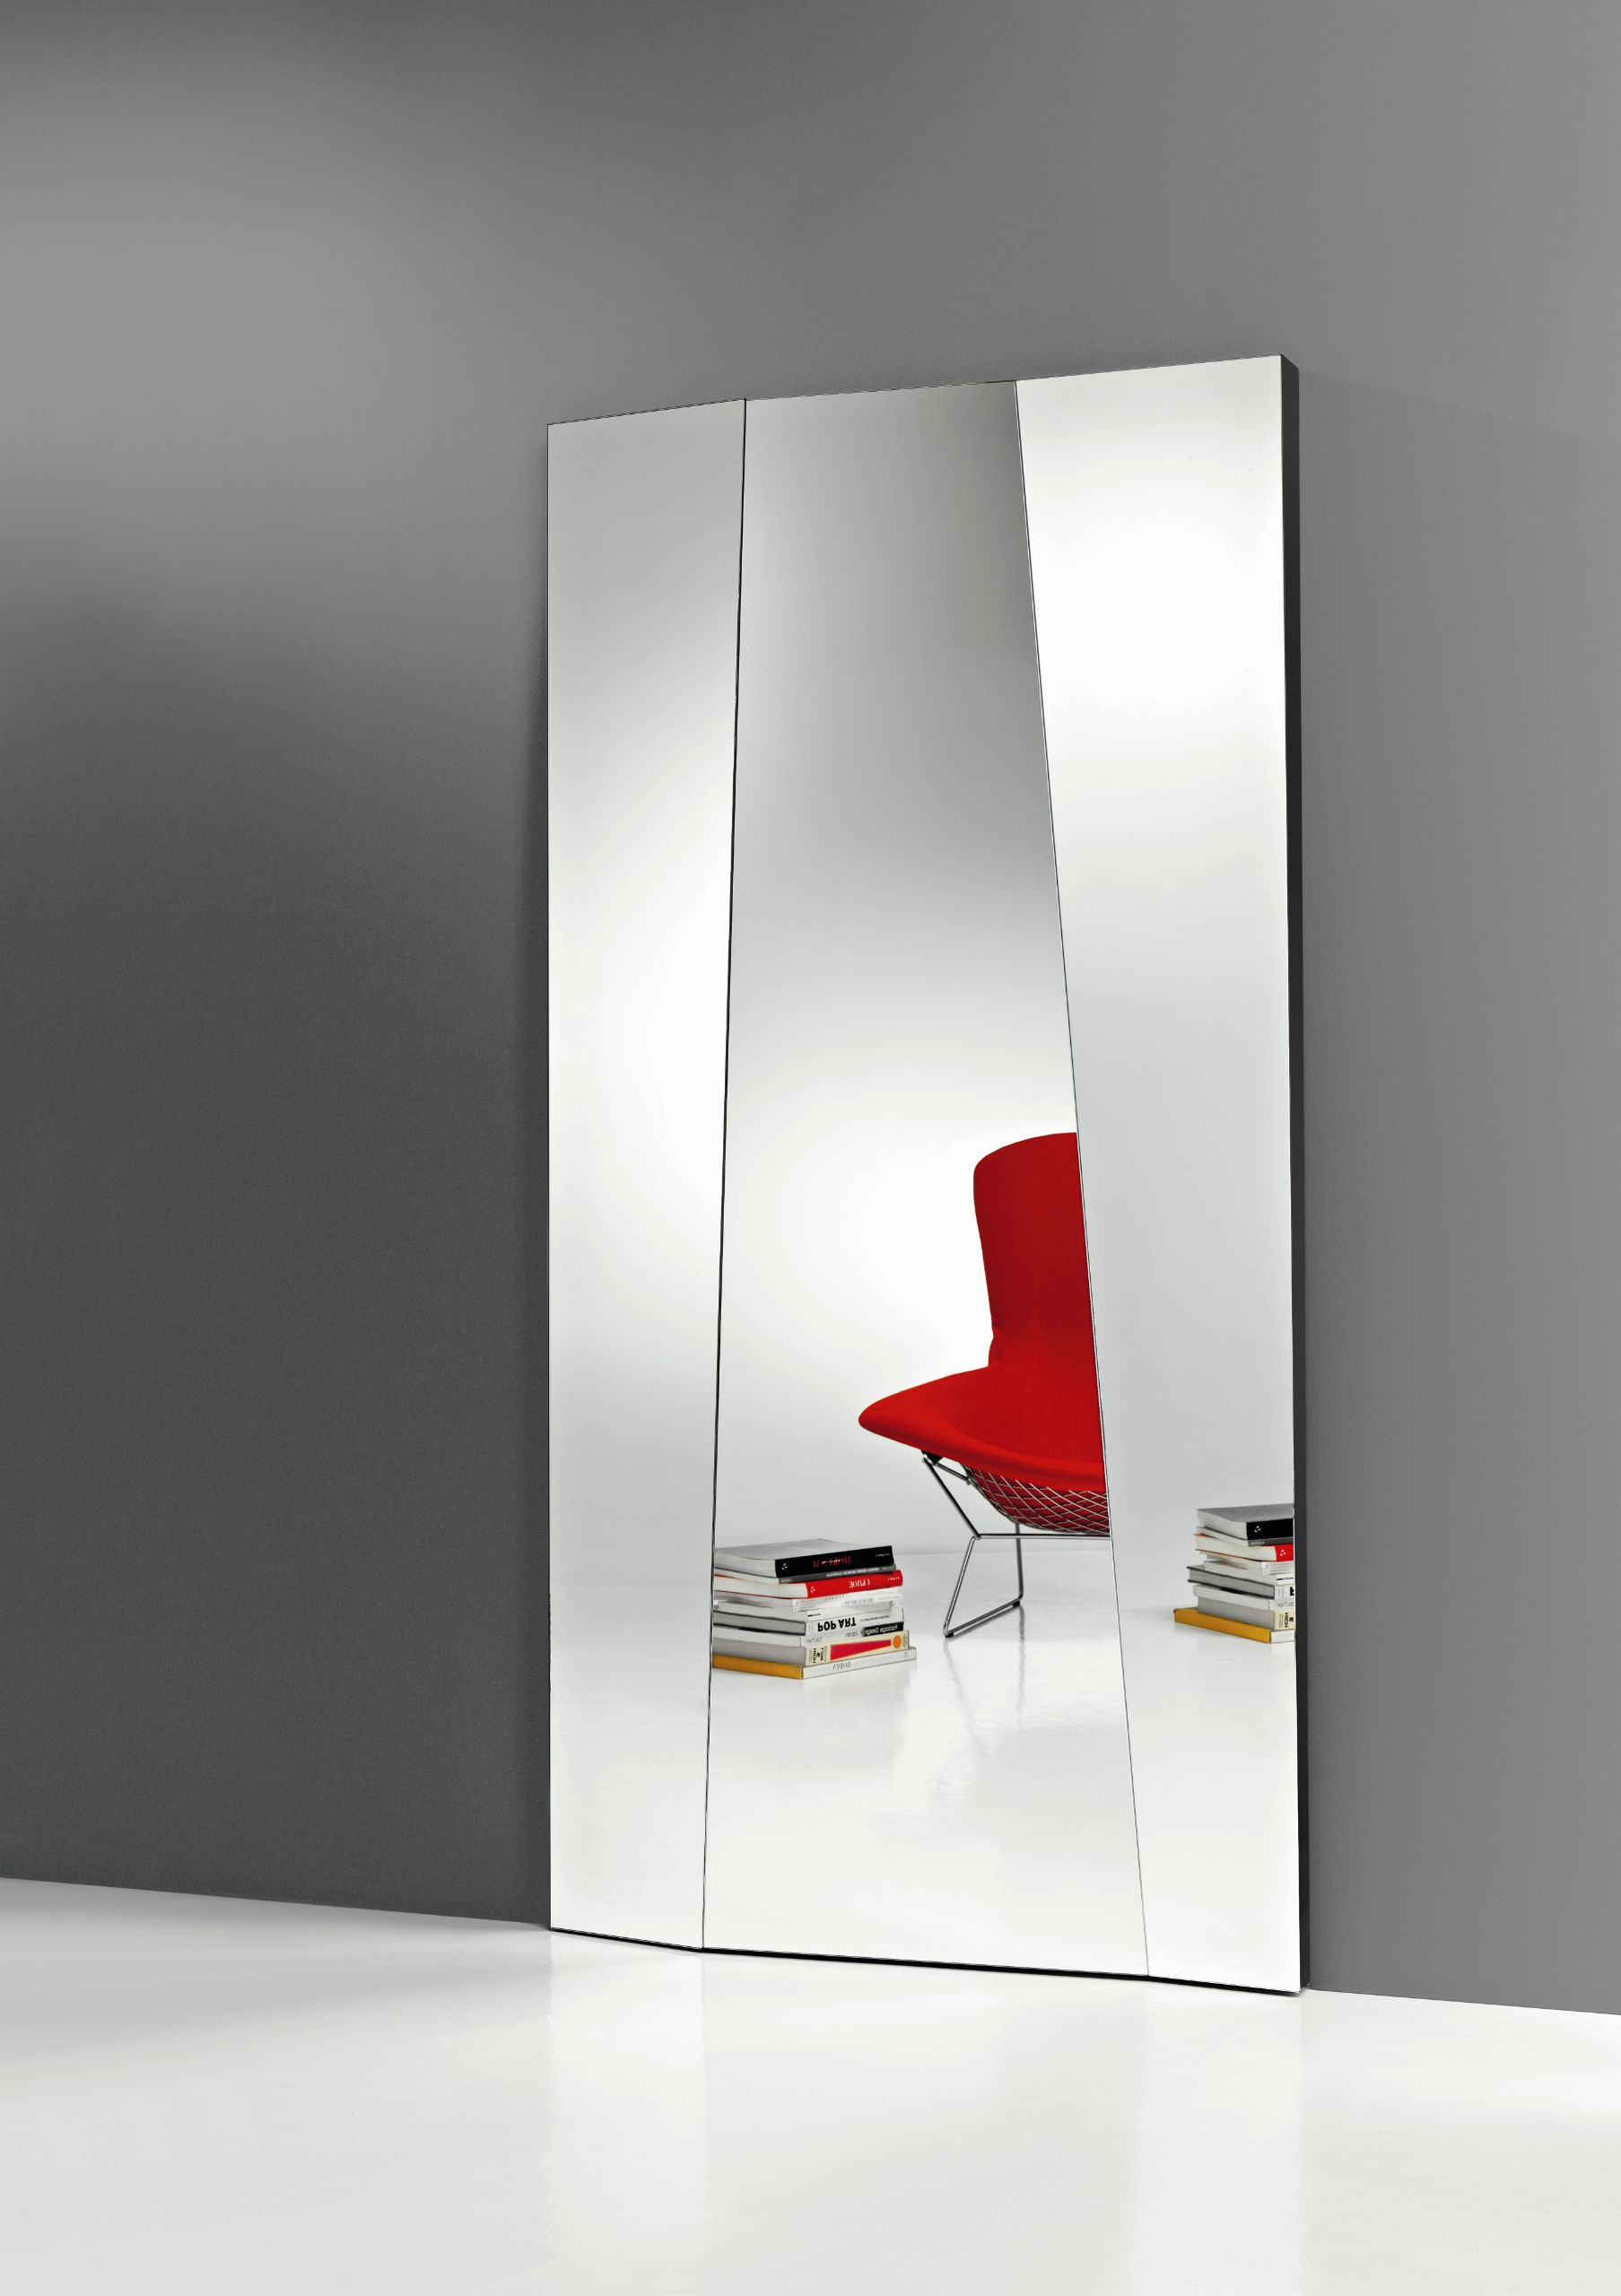 Pin by leila leila on mirrormirror pinterest space for Miroir concave convexe